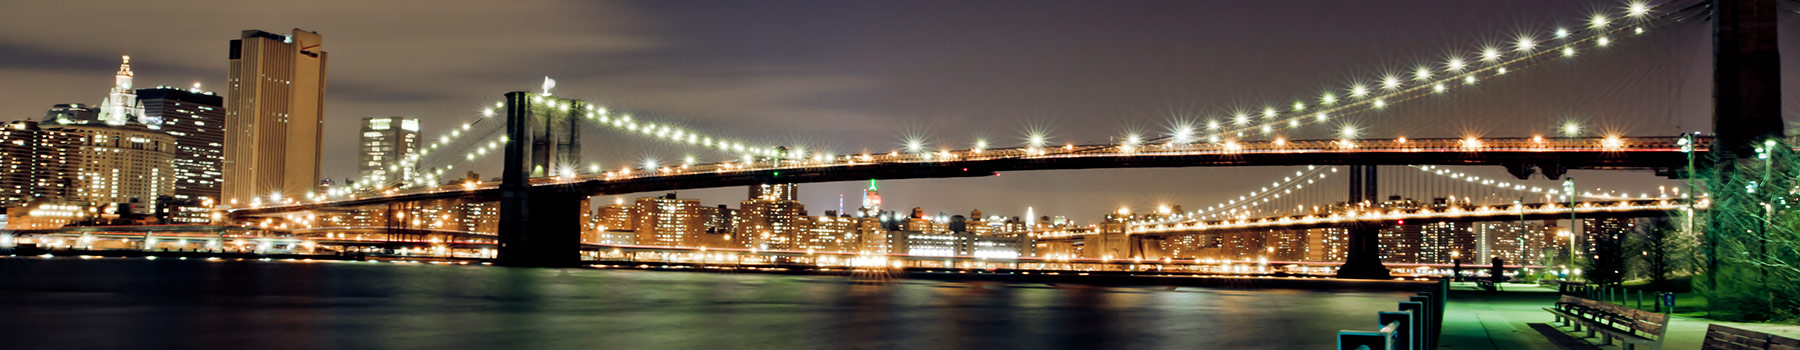 GSB NYC Skyline with Bridge Signpost